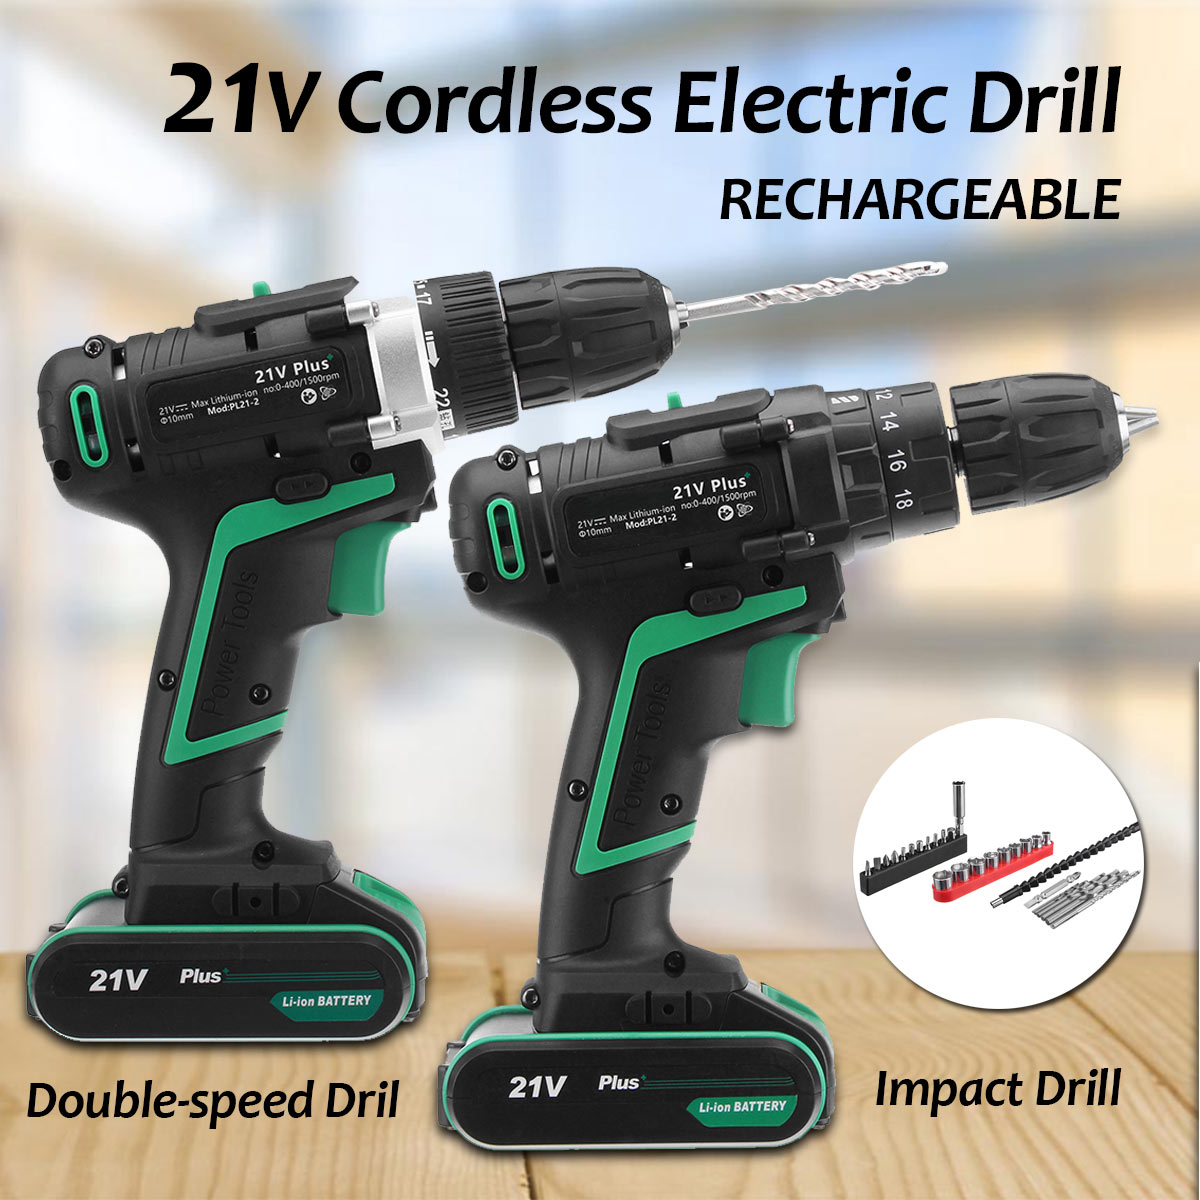 Double Speed Cordless Electric Screwdriver Drill Lithium Battery Wireless Power Tools Electrical Hand Impact Drill SetDouble Speed Cordless Electric Screwdriver Drill Lithium Battery Wireless Power Tools Electrical Hand Impact Drill Set